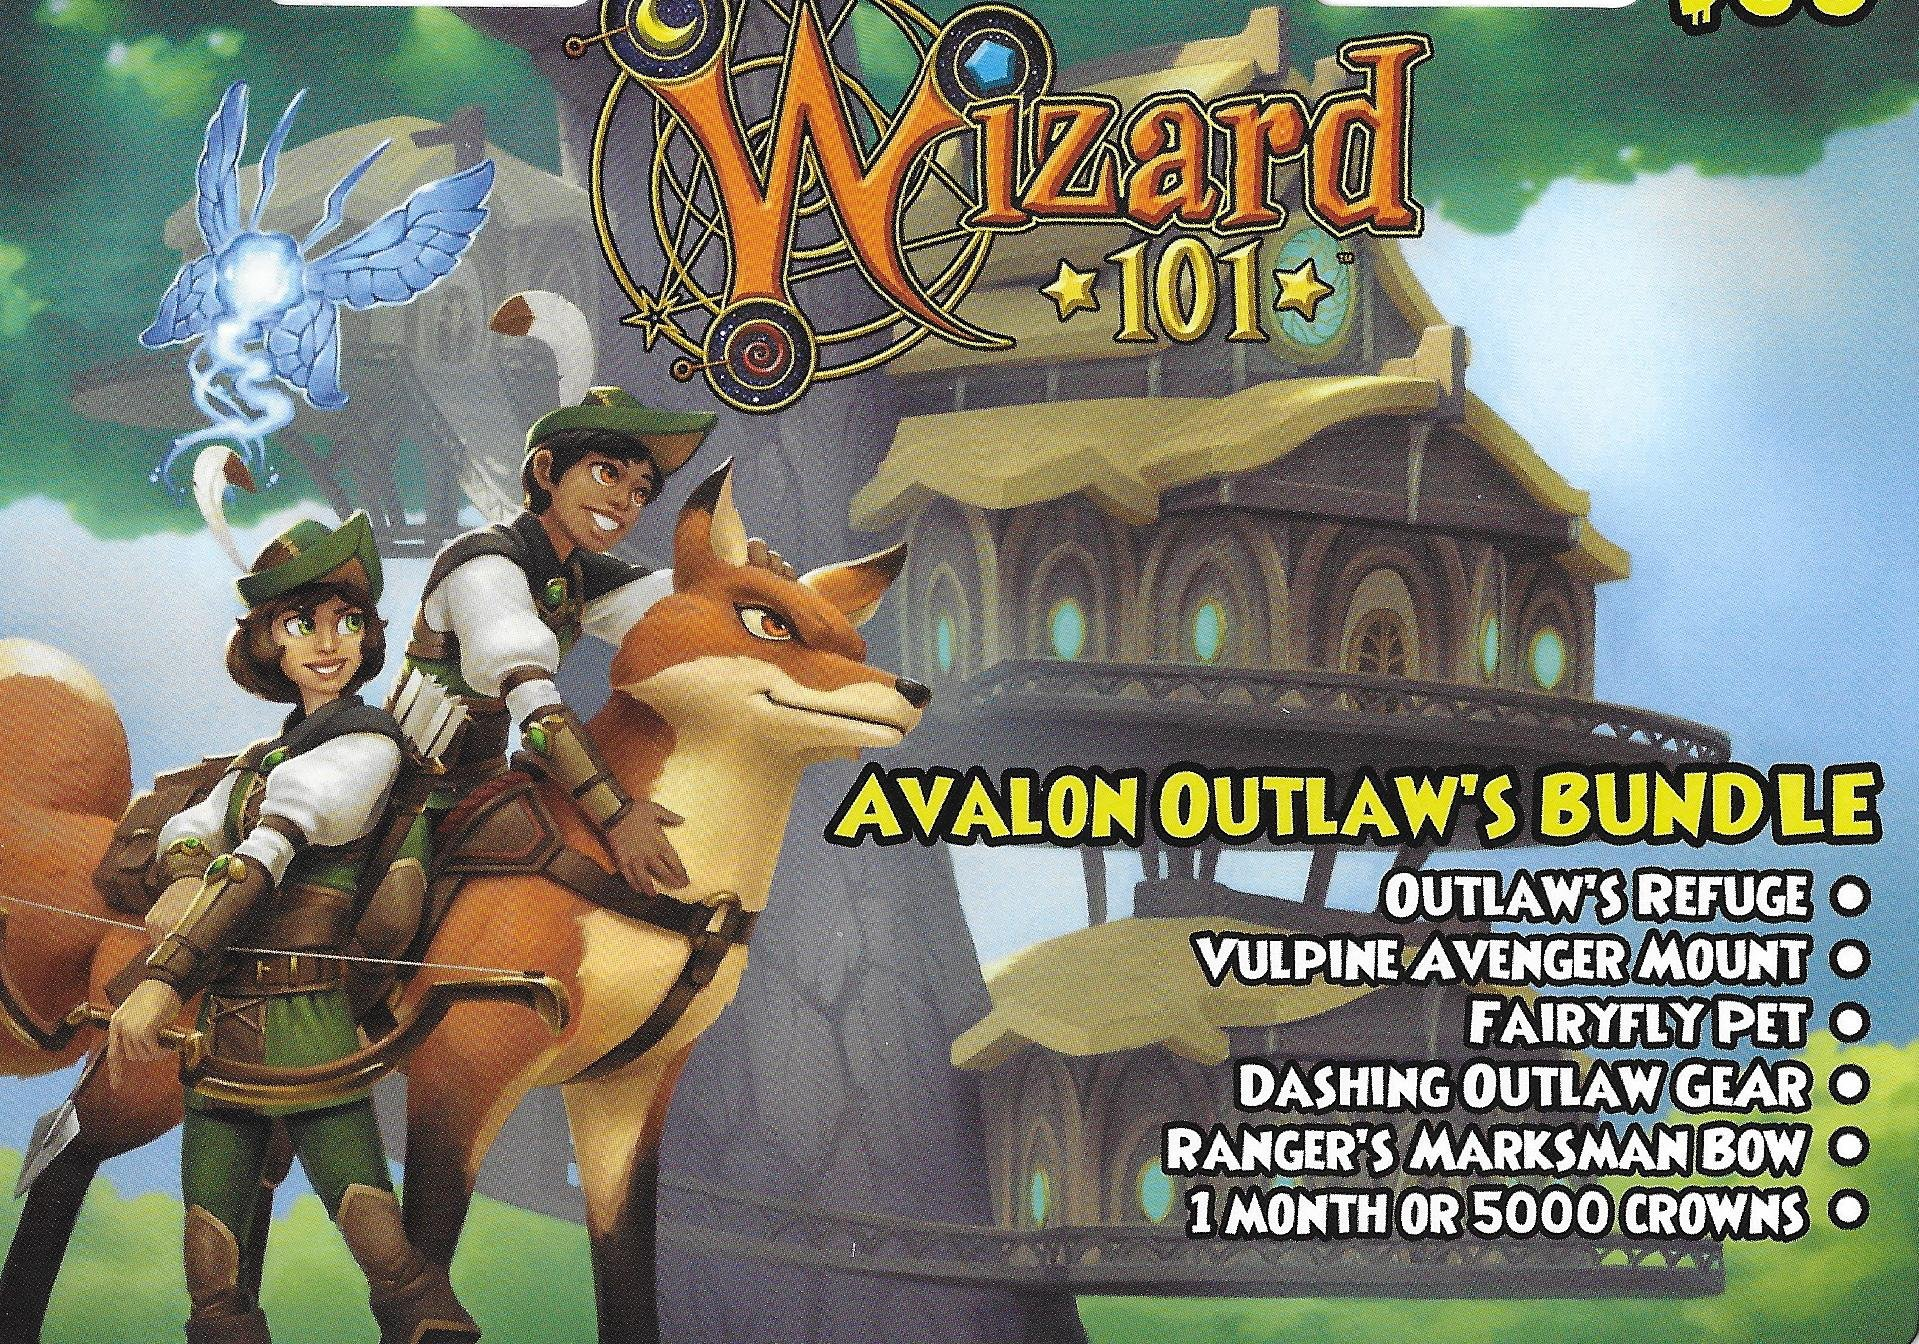 Amazon com: Wizard 101 Avalon Outlaw's Bundle Prepaid Game Card